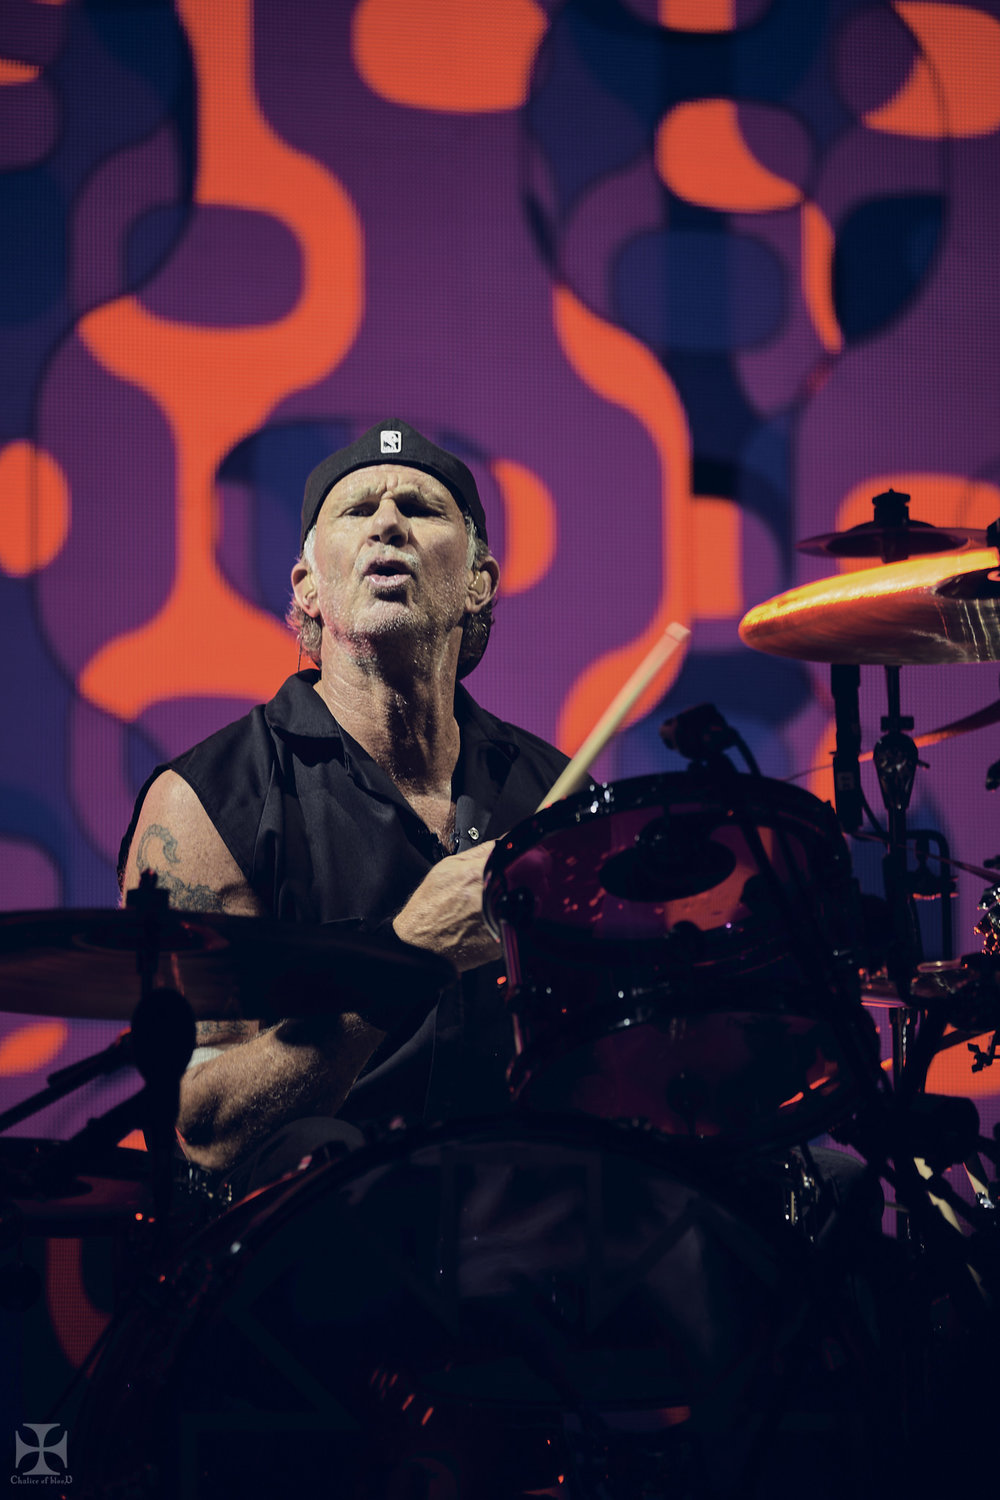 2019.03 RHCP - Red Hot Chilli Peppers 0119.jpg